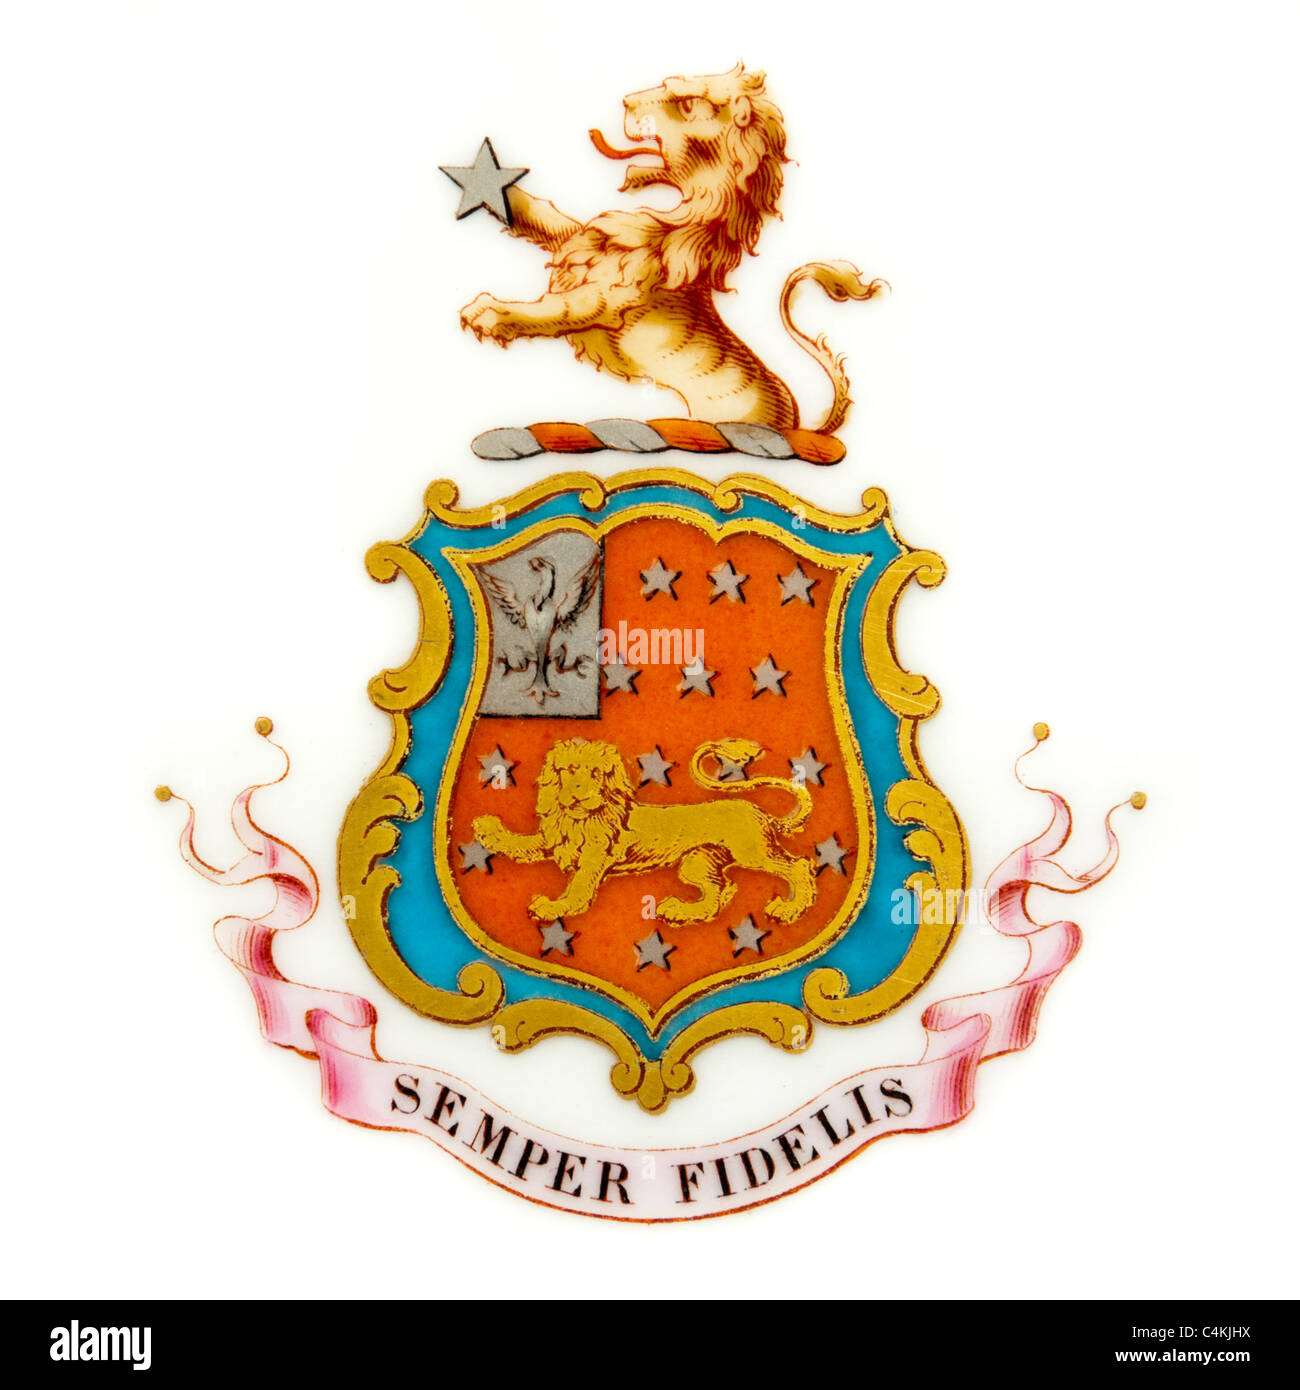 Semper Fidelis (Always Faithful), the motto of the U.S. Marine Corps and the City of Exeter (UK) Stock Photo